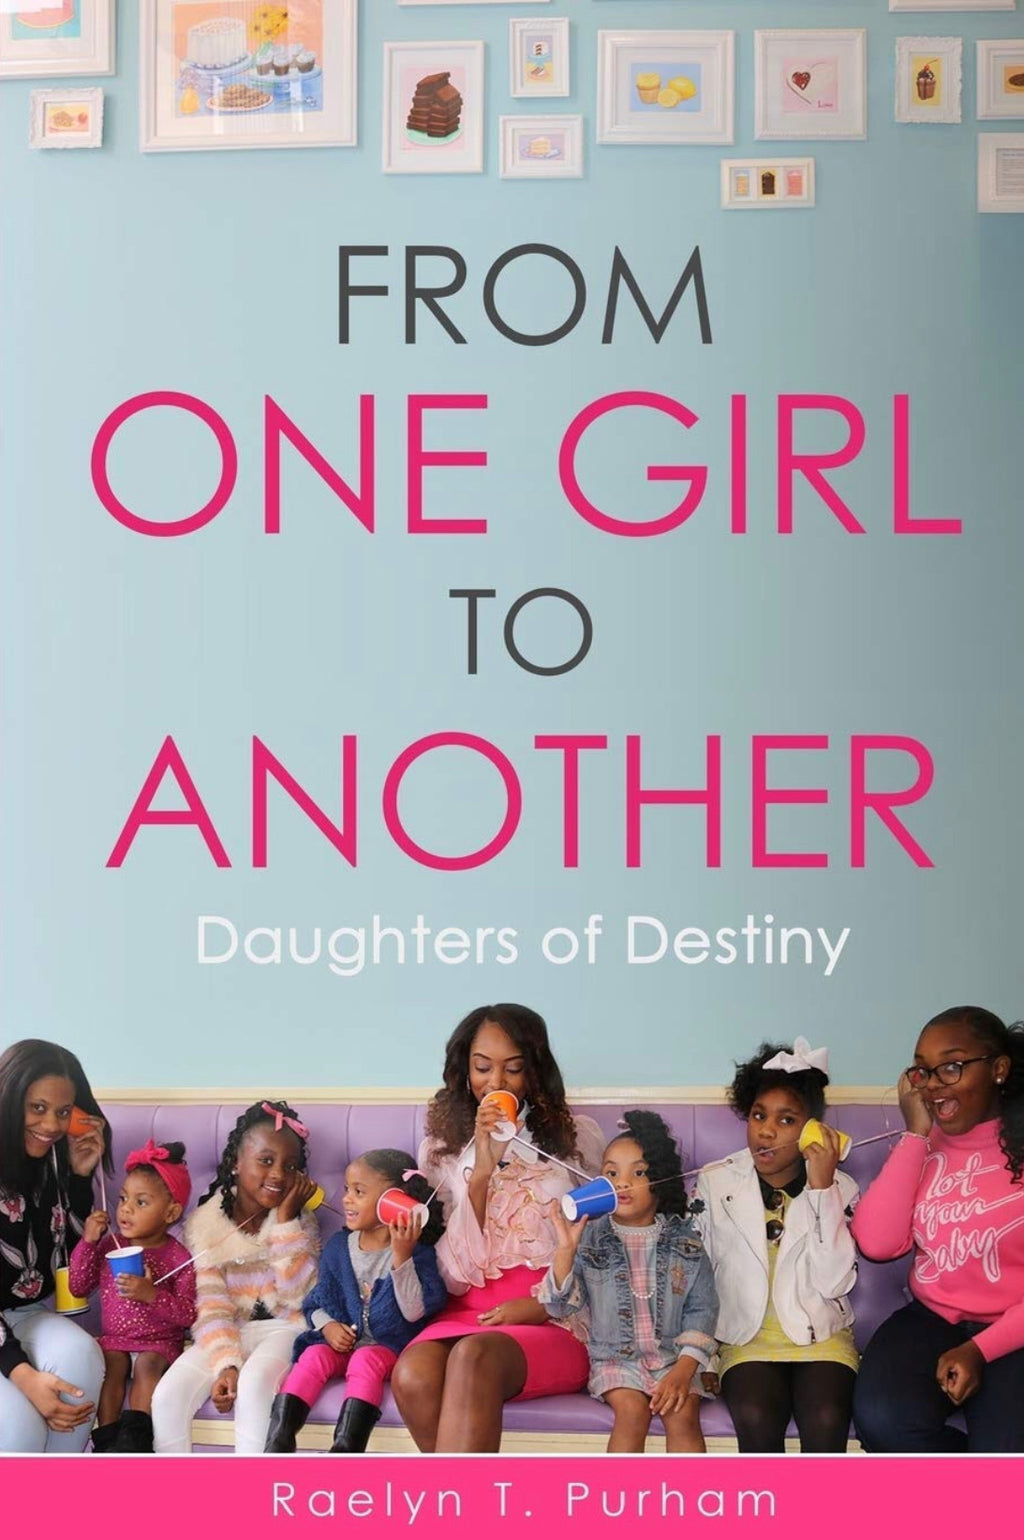 From One Girl to Another: Daughters of Destiny - Chapter Book